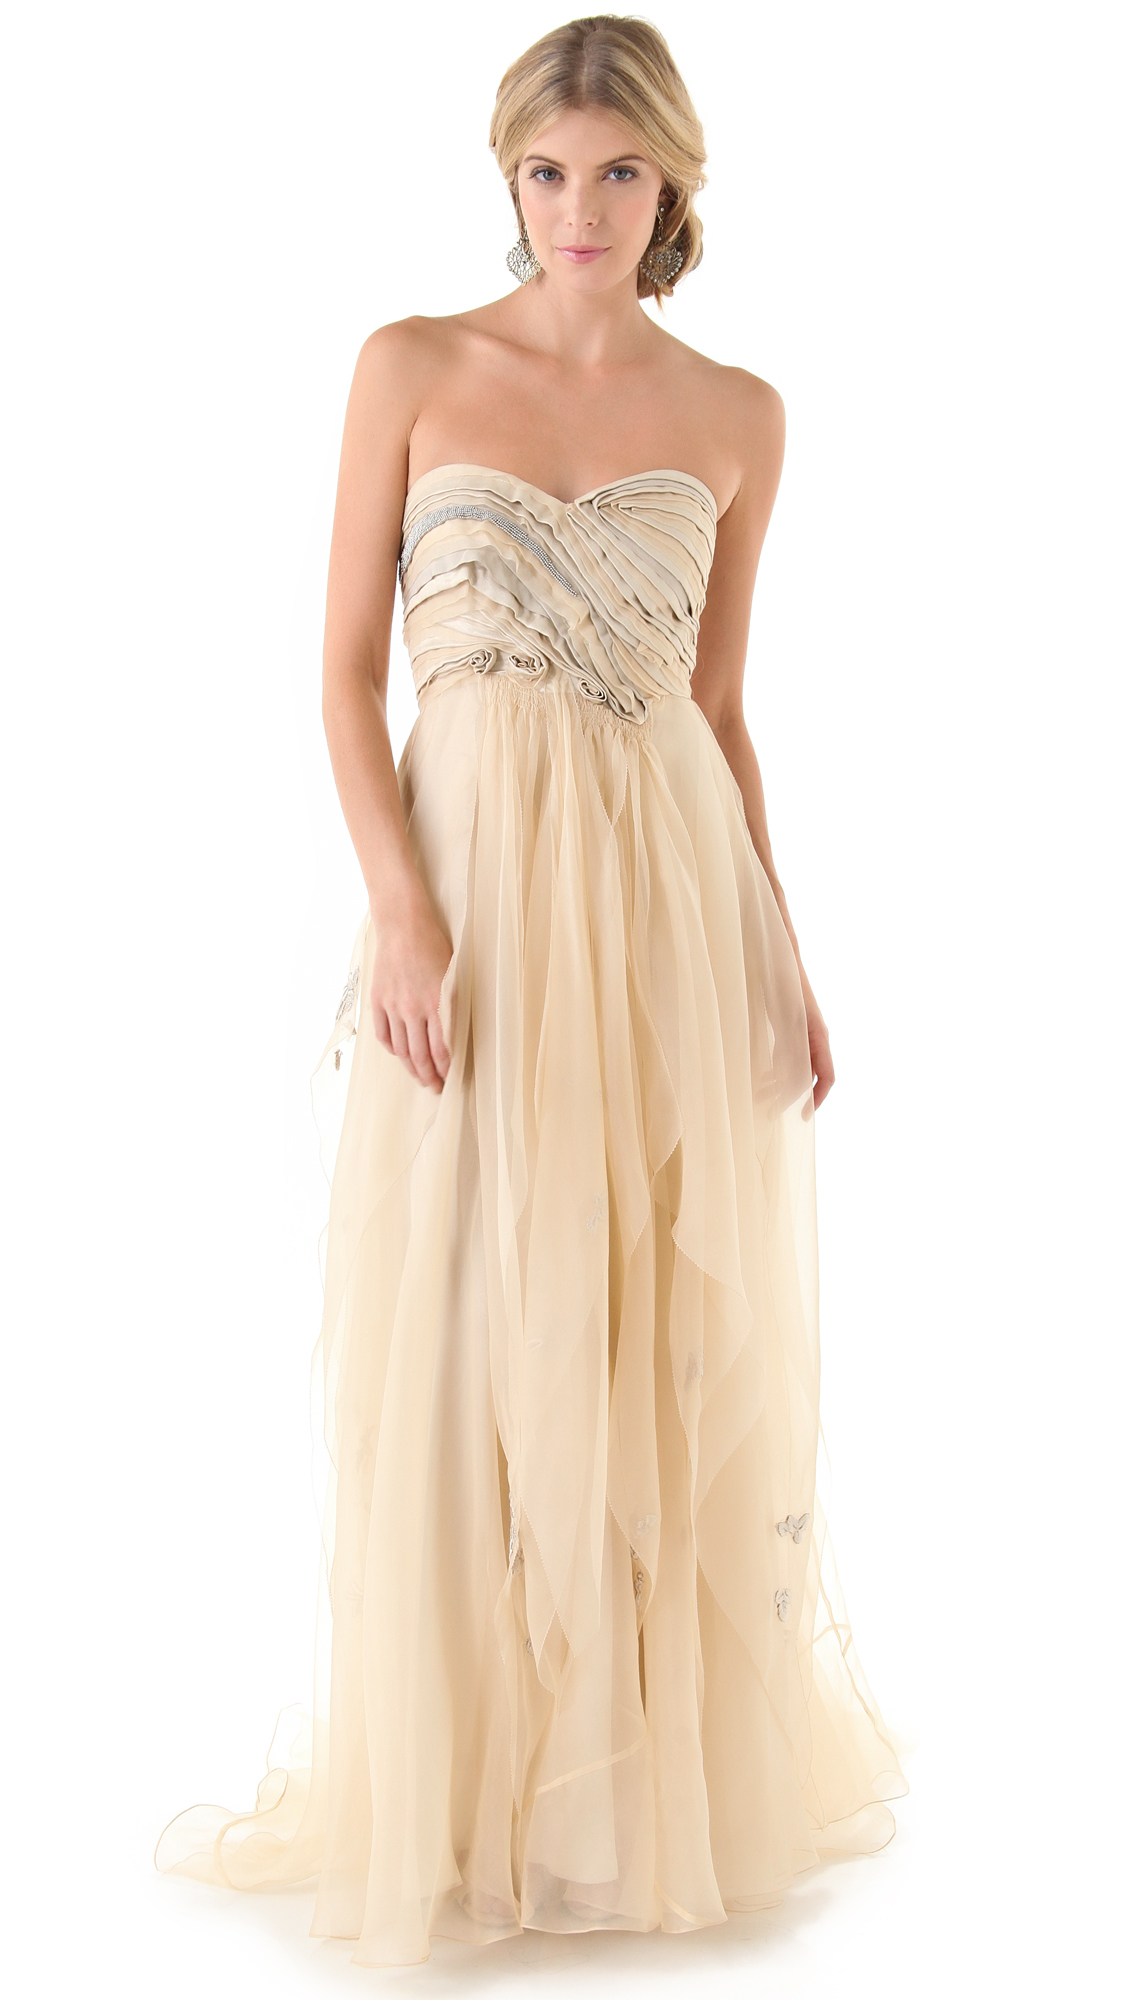 Lyst - Catherine Deane Giselle Strapless Gown - Ecru in Natural